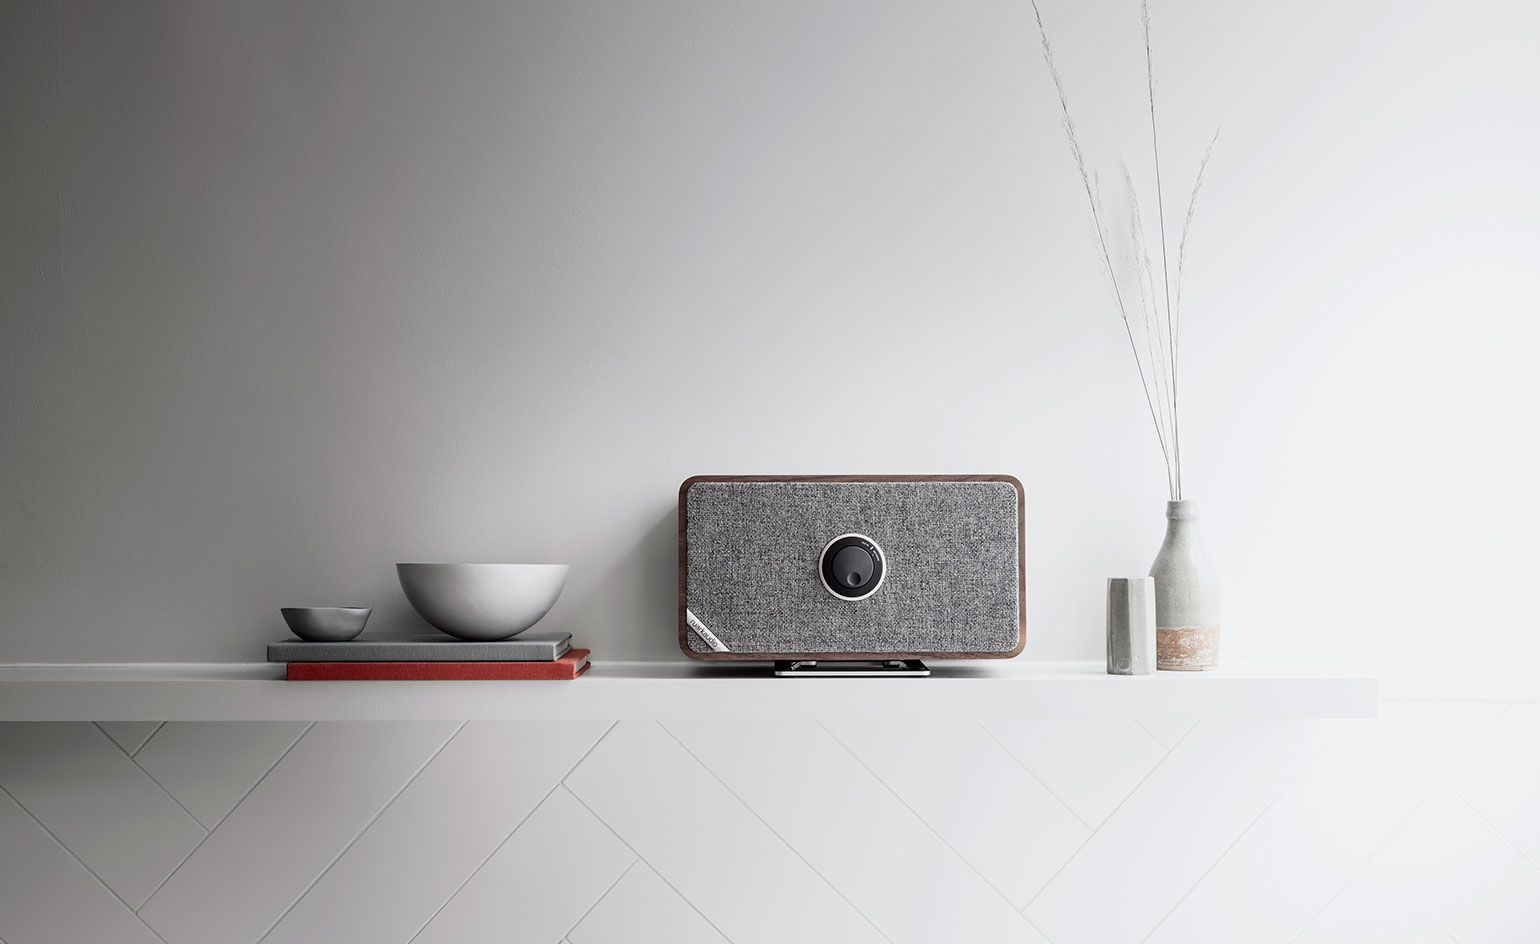 A lifestyle view of Ruark's new connected speaker, the MRx